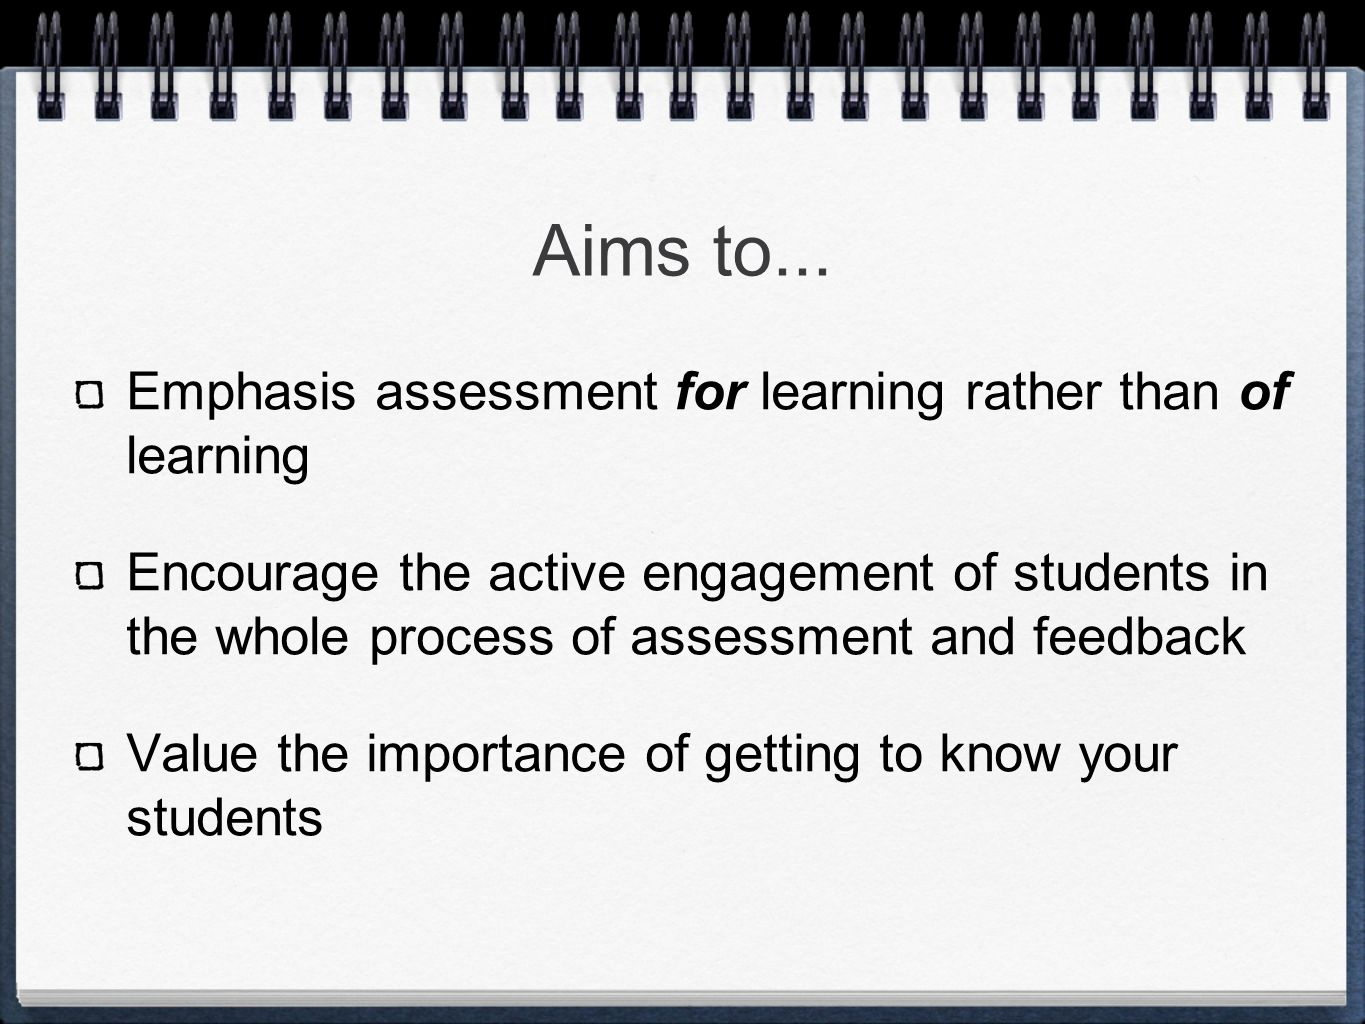 Issues with assessment.